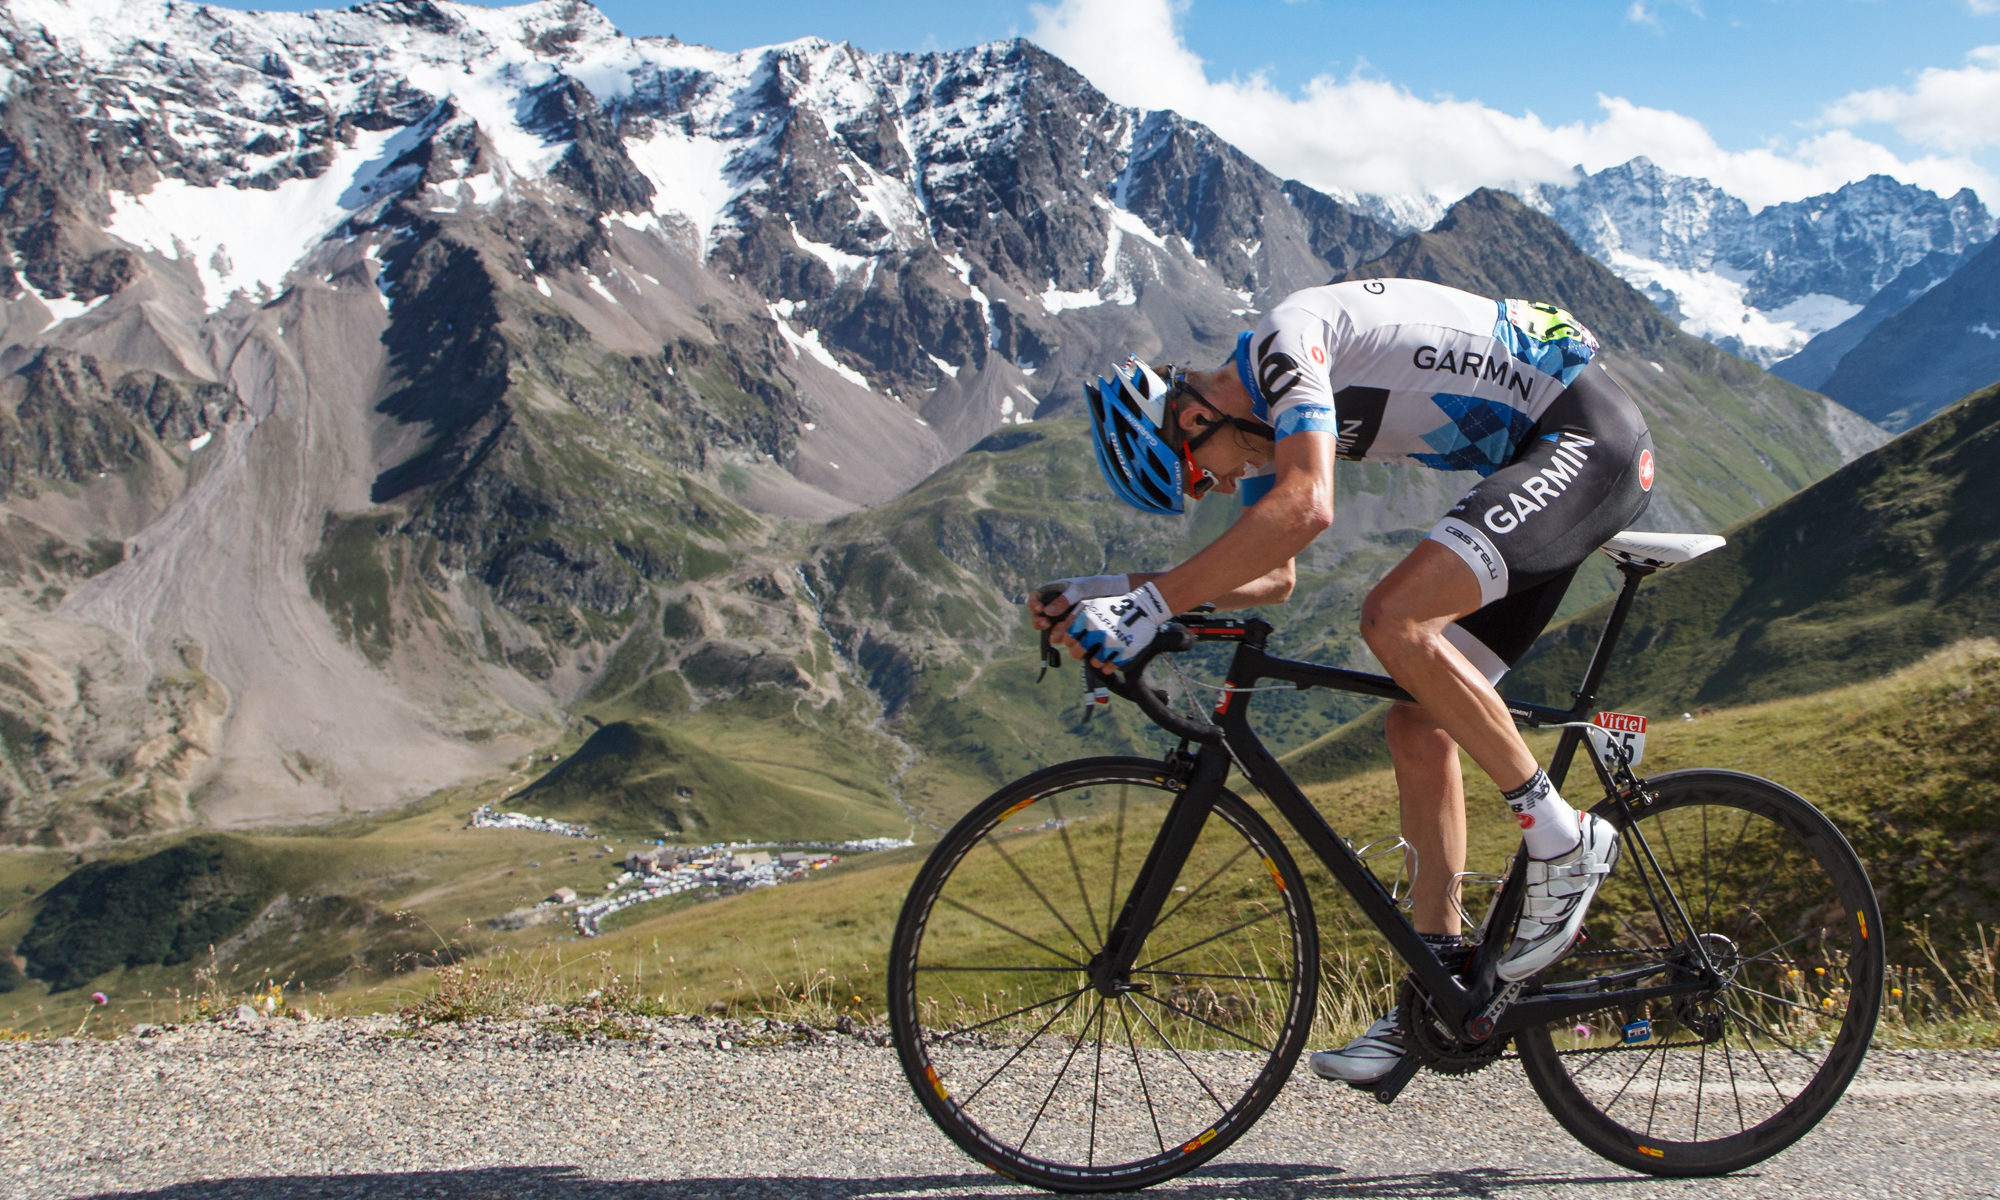 Canadian cyclist Ryder Hesjedal on the Galibier by Mark Johnson/Ironstring